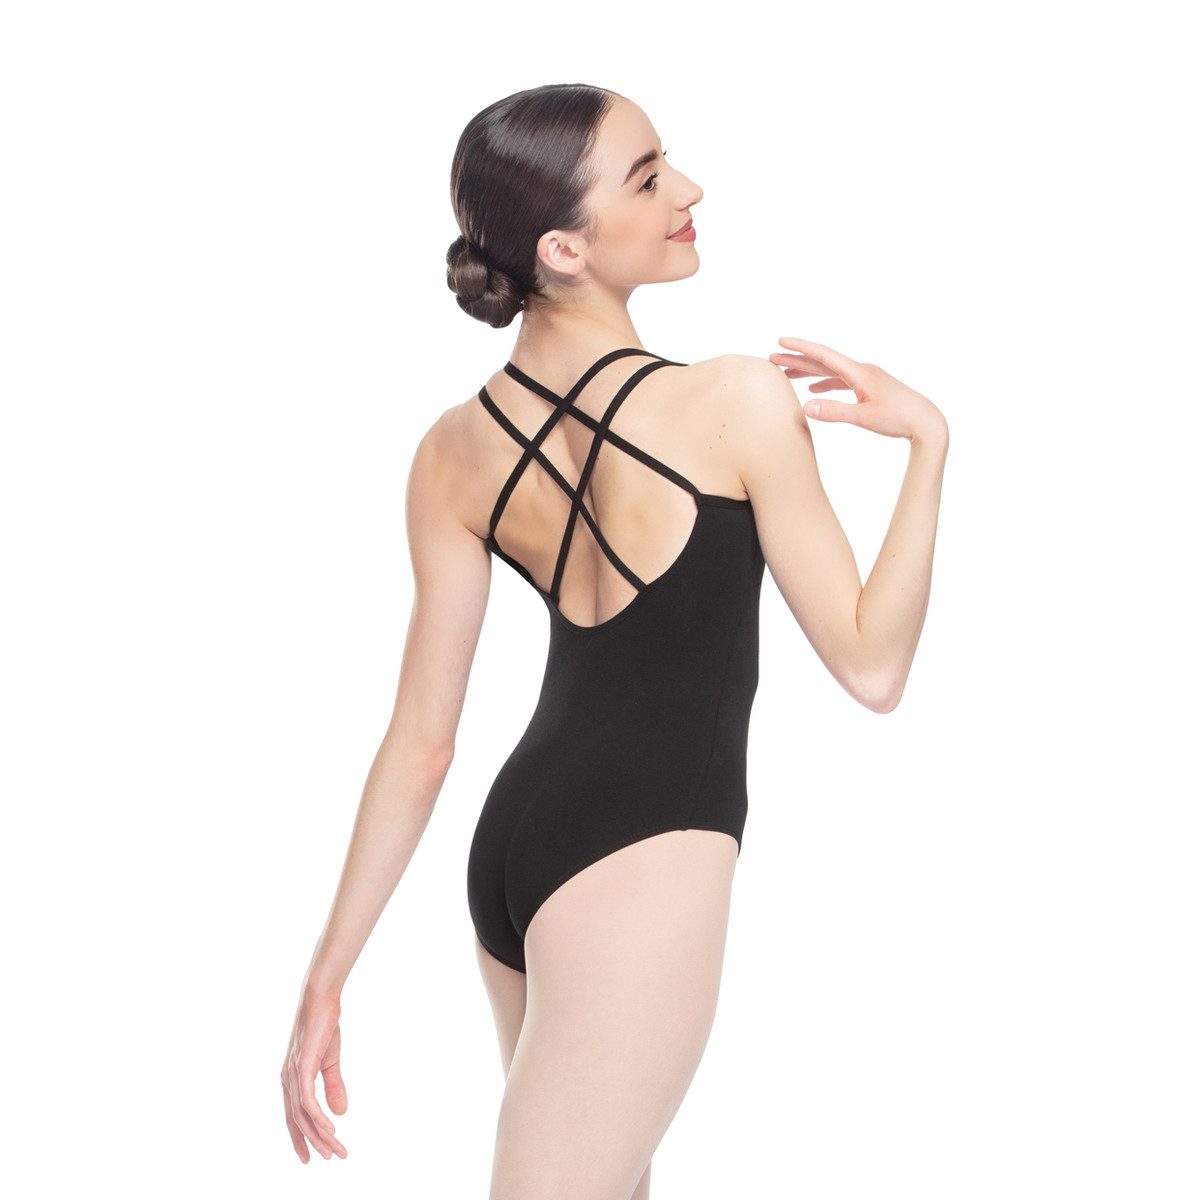 COTTON-SPANDEX STRAPPY BACK LEOTARD